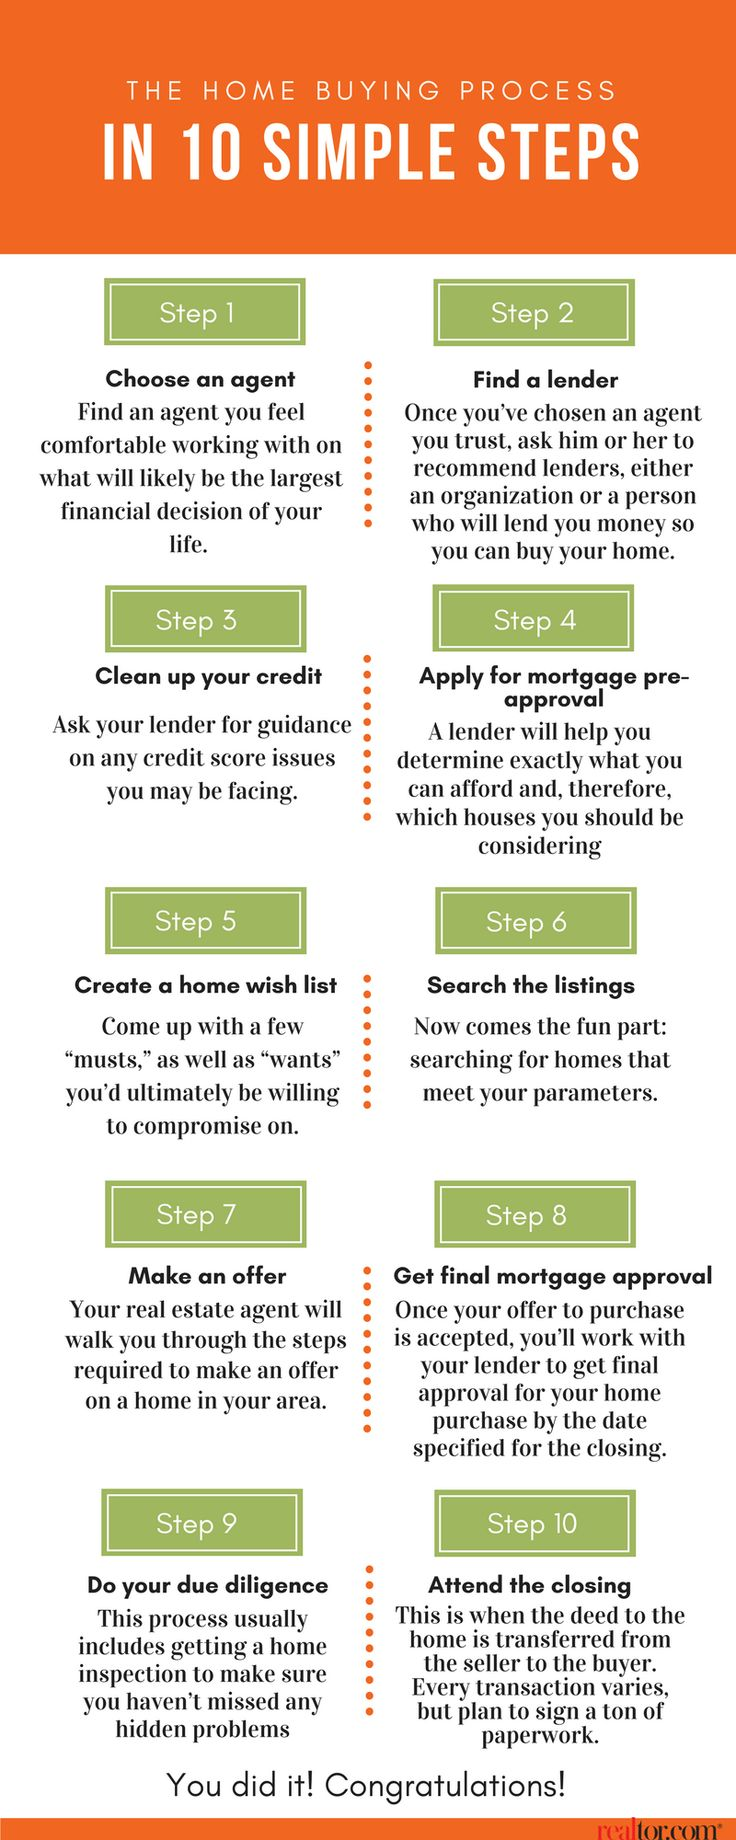 The Homebuying Process In 10 Simple Steps